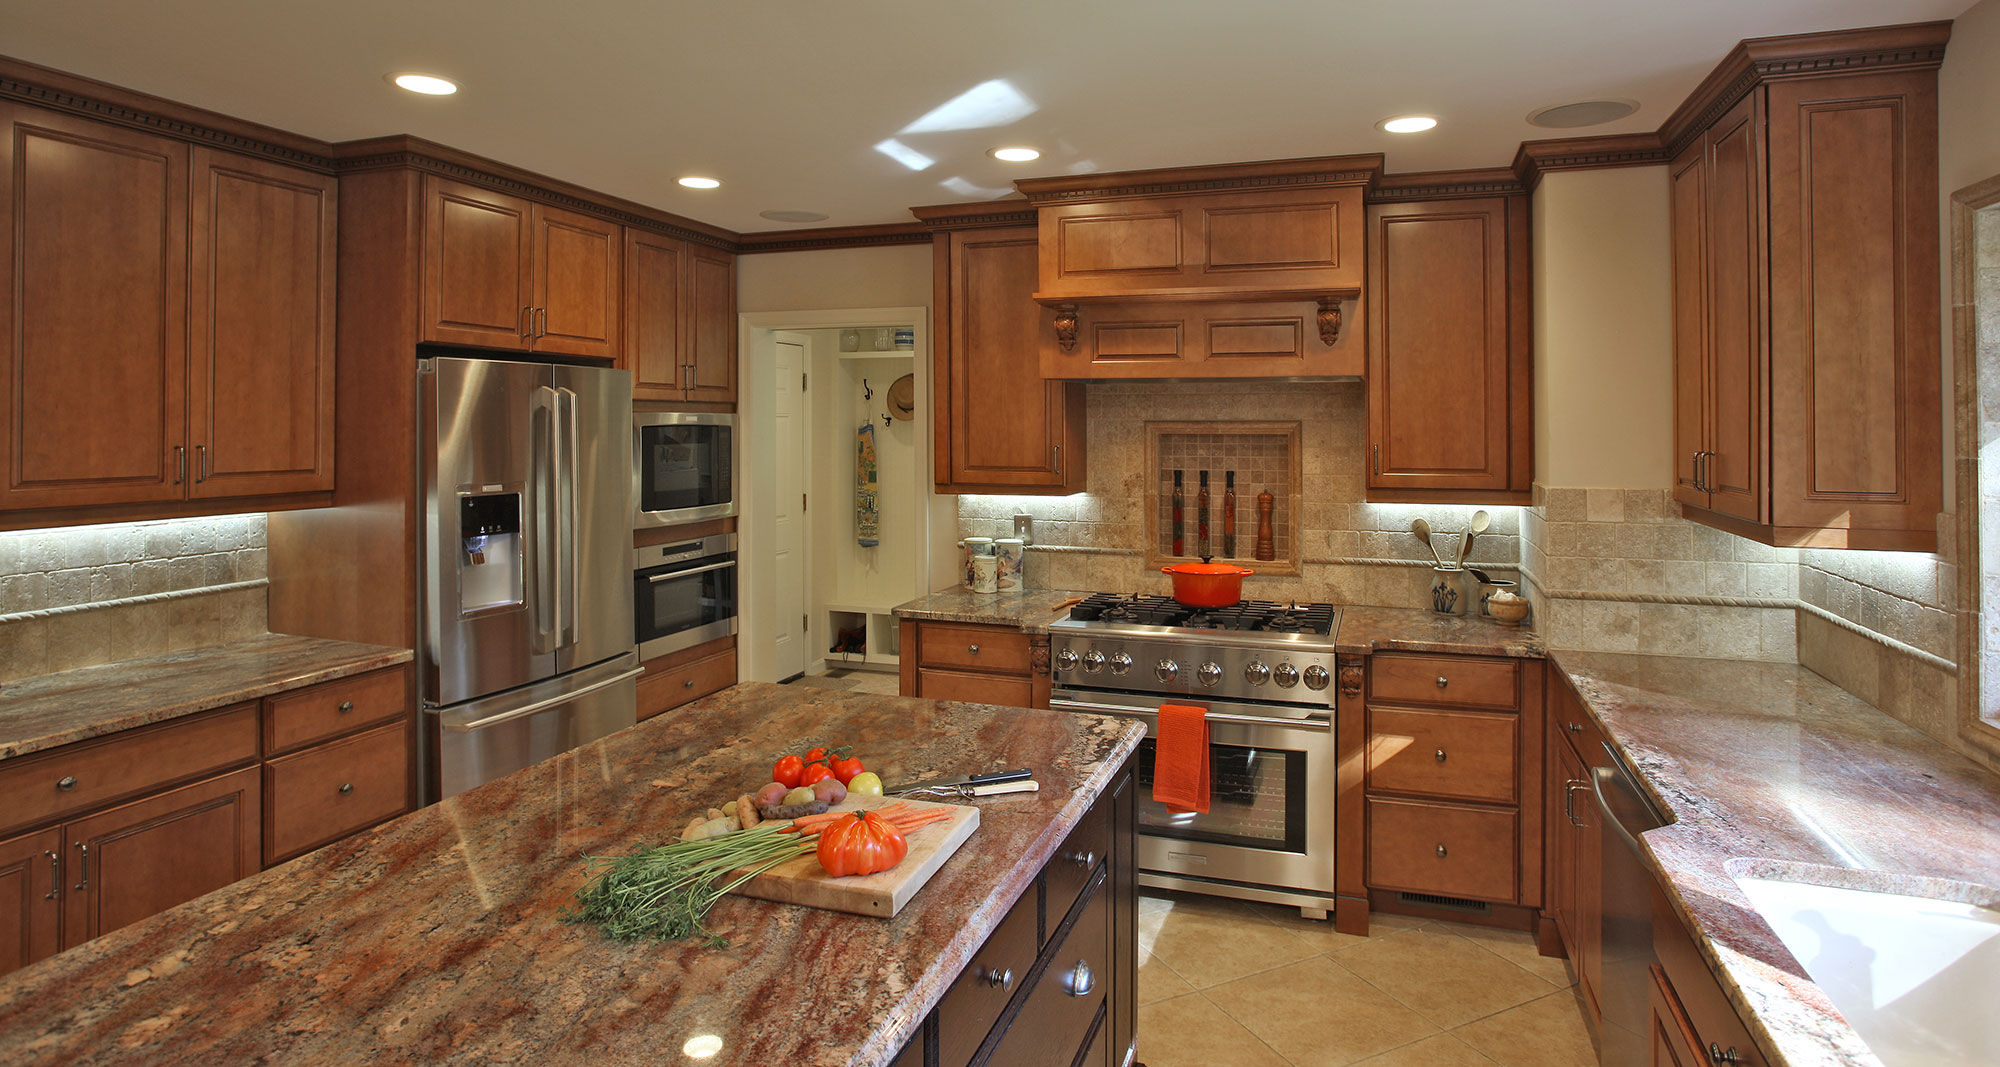 Kitchen Remodeling Northern Va Unique Kitchen And Bath Remodeling Serving Northern Virginia Maryland . Review